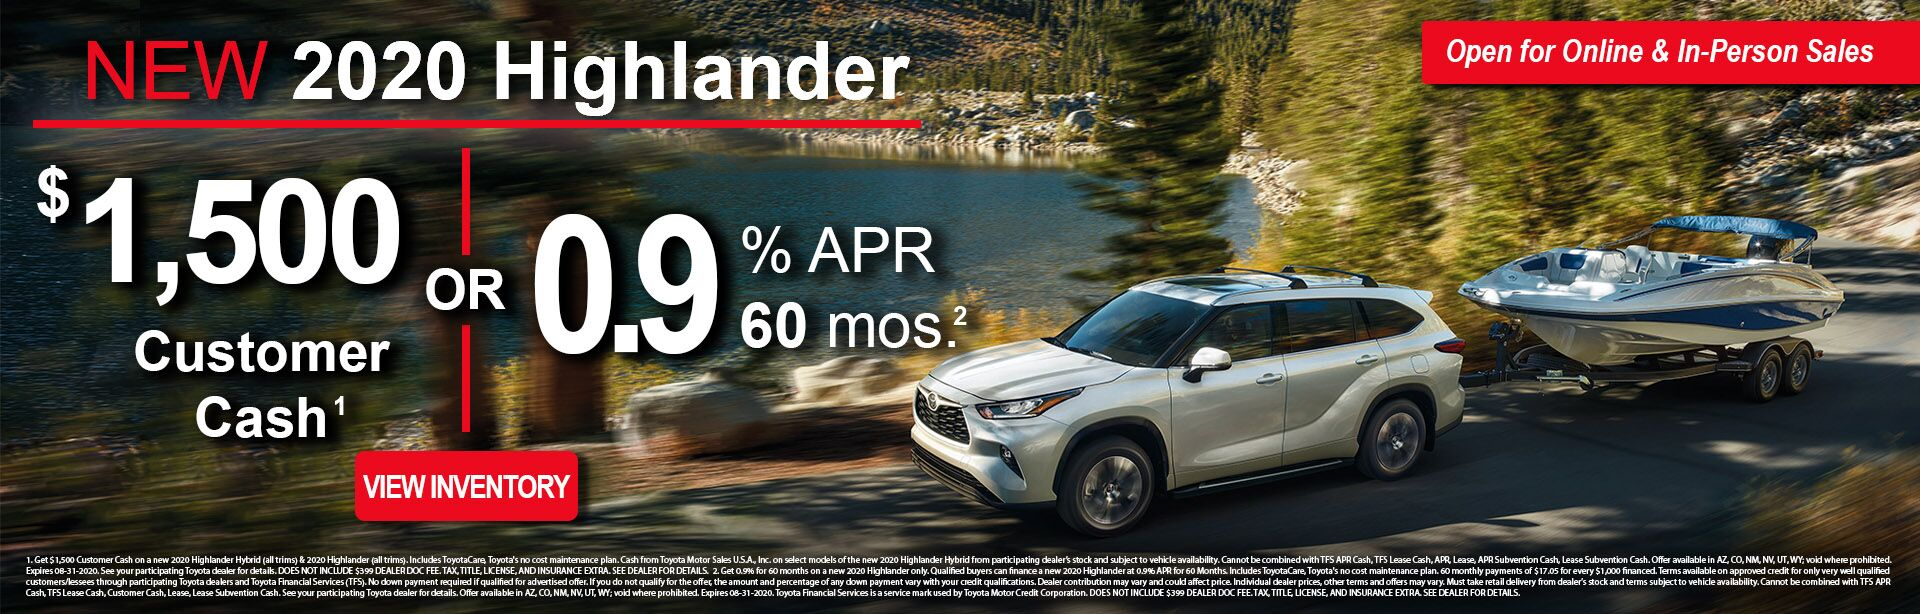 8-5-20 Highlander Cash & Finance Offer